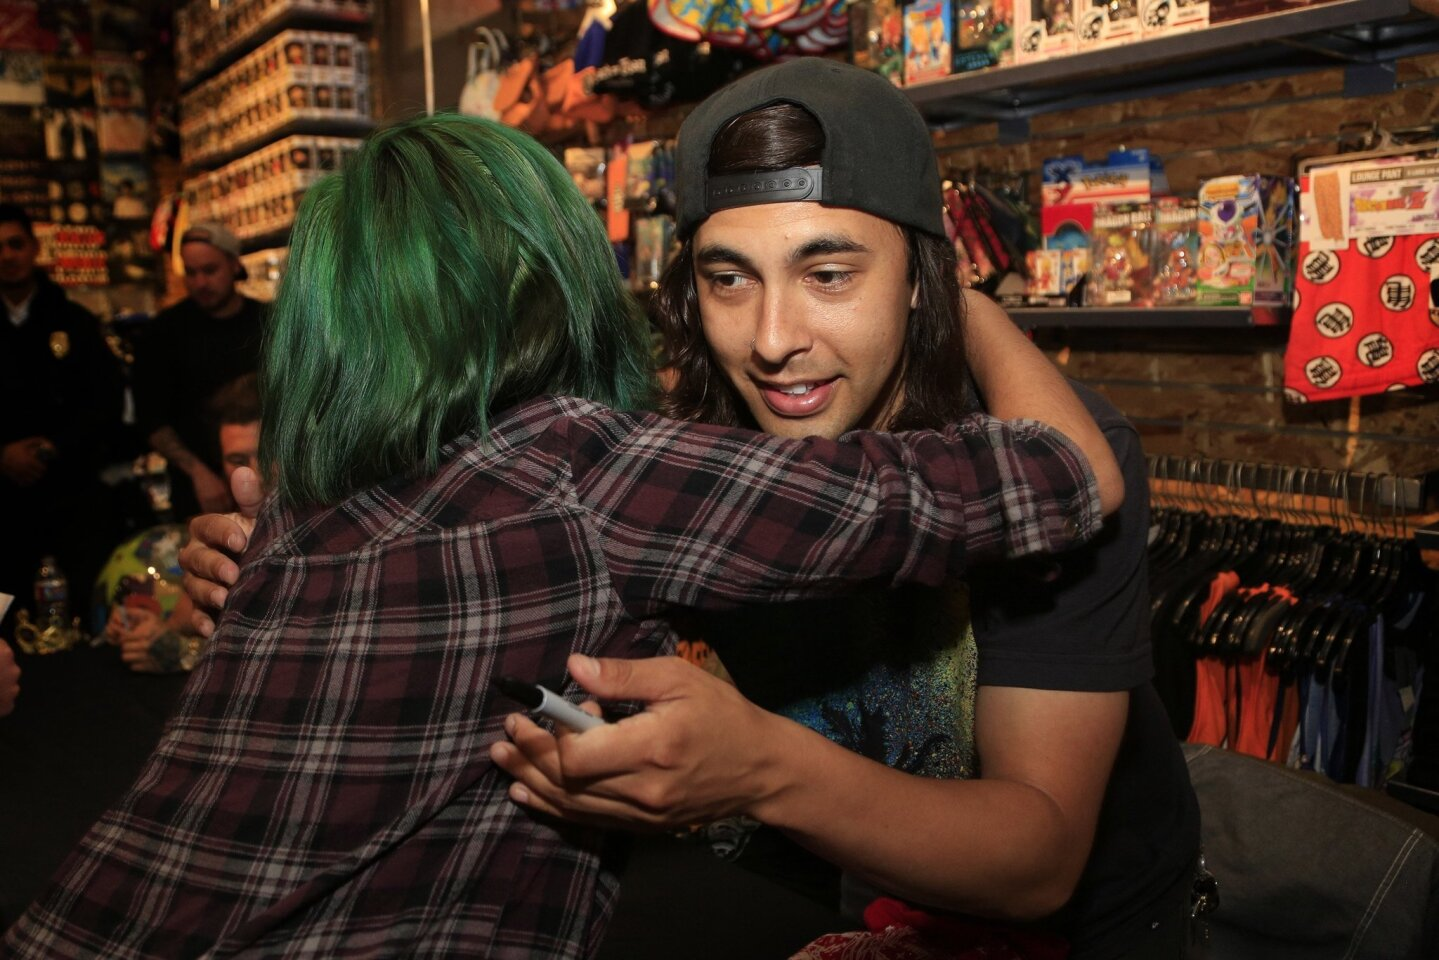 Vic Fuentes of Pierce the Veil hugs a fan during an album signing event at Hot Topic at Westfield Mission Valley mall.